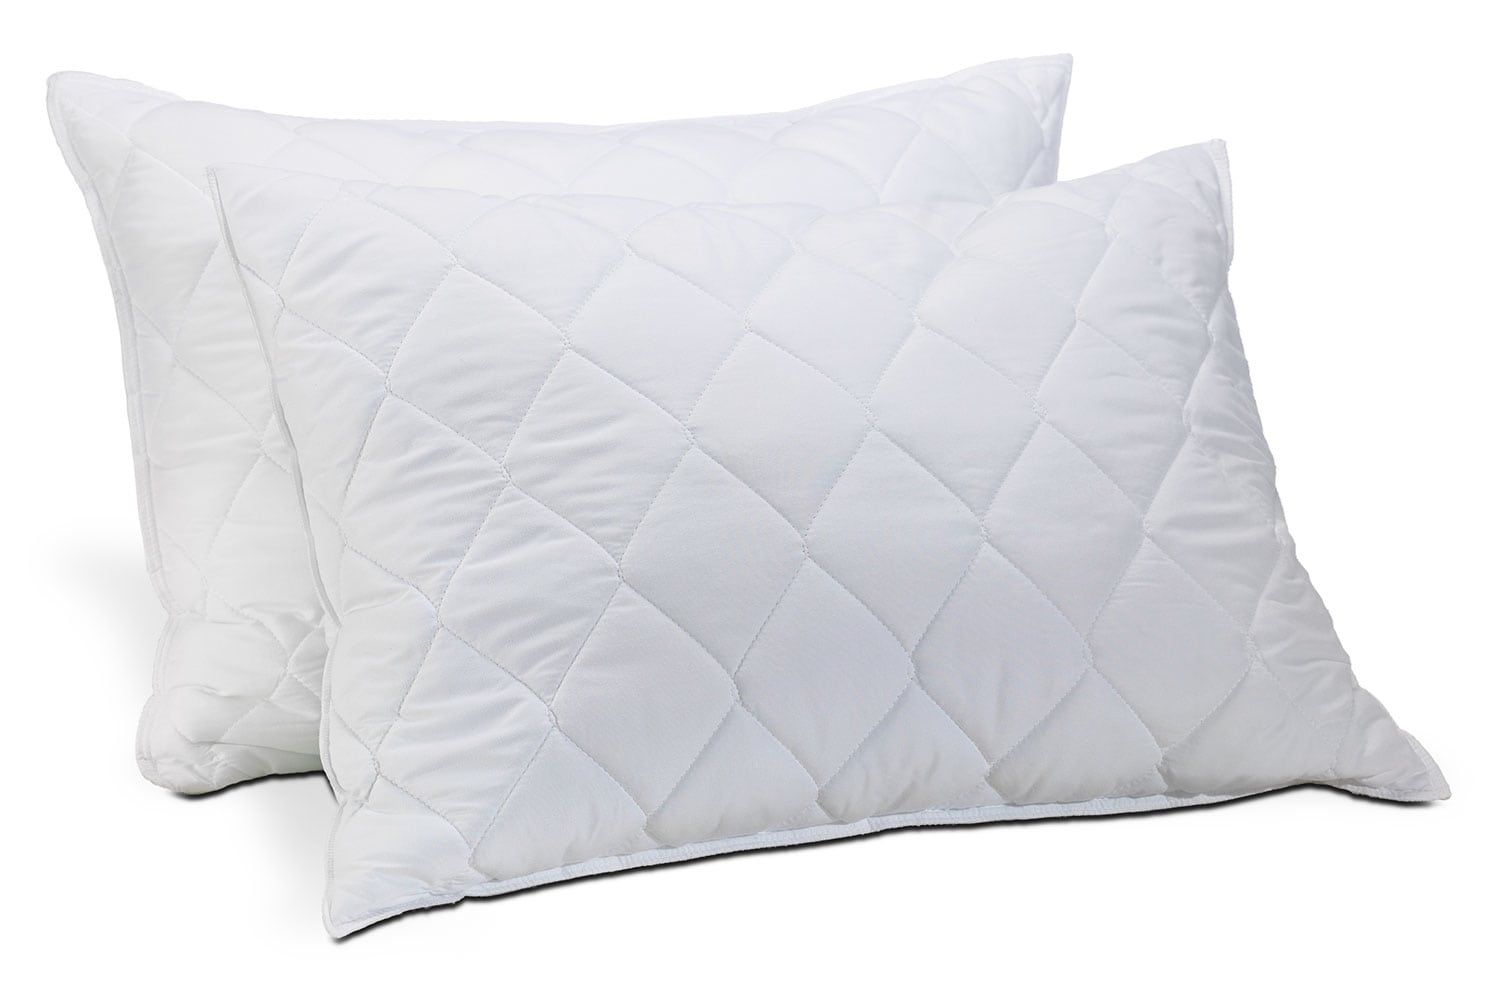 Mattresses and Bedding - Serenity 2 Pc. Pillow Set